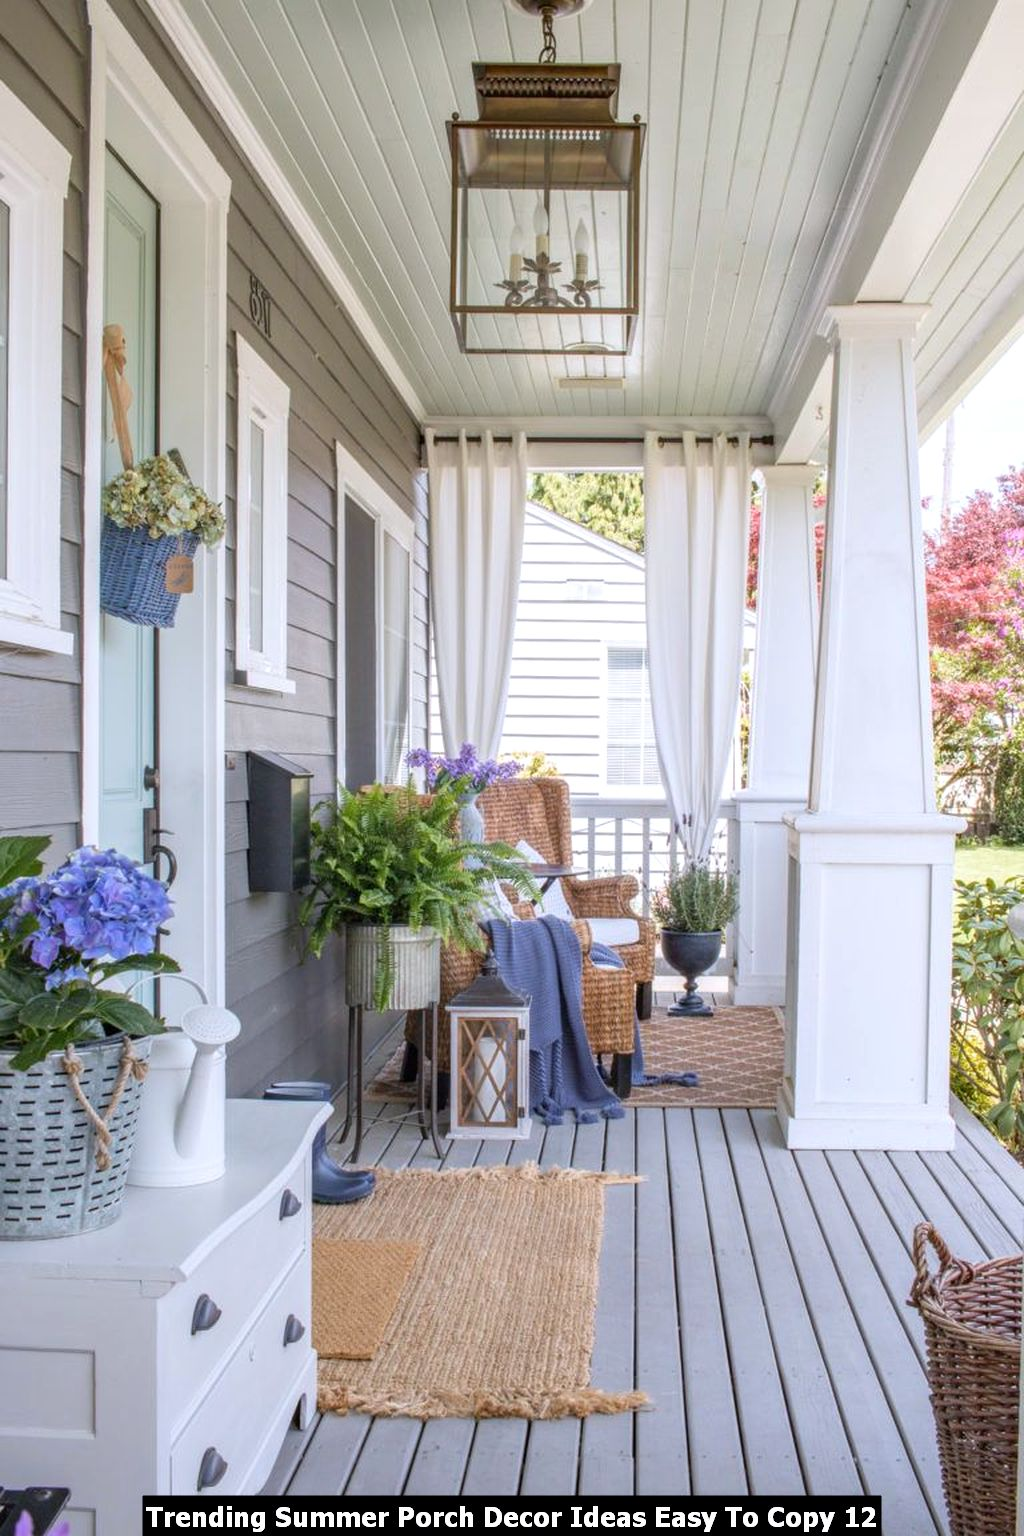 Trending Summer Porch Decor Ideas Easy To Copy 12